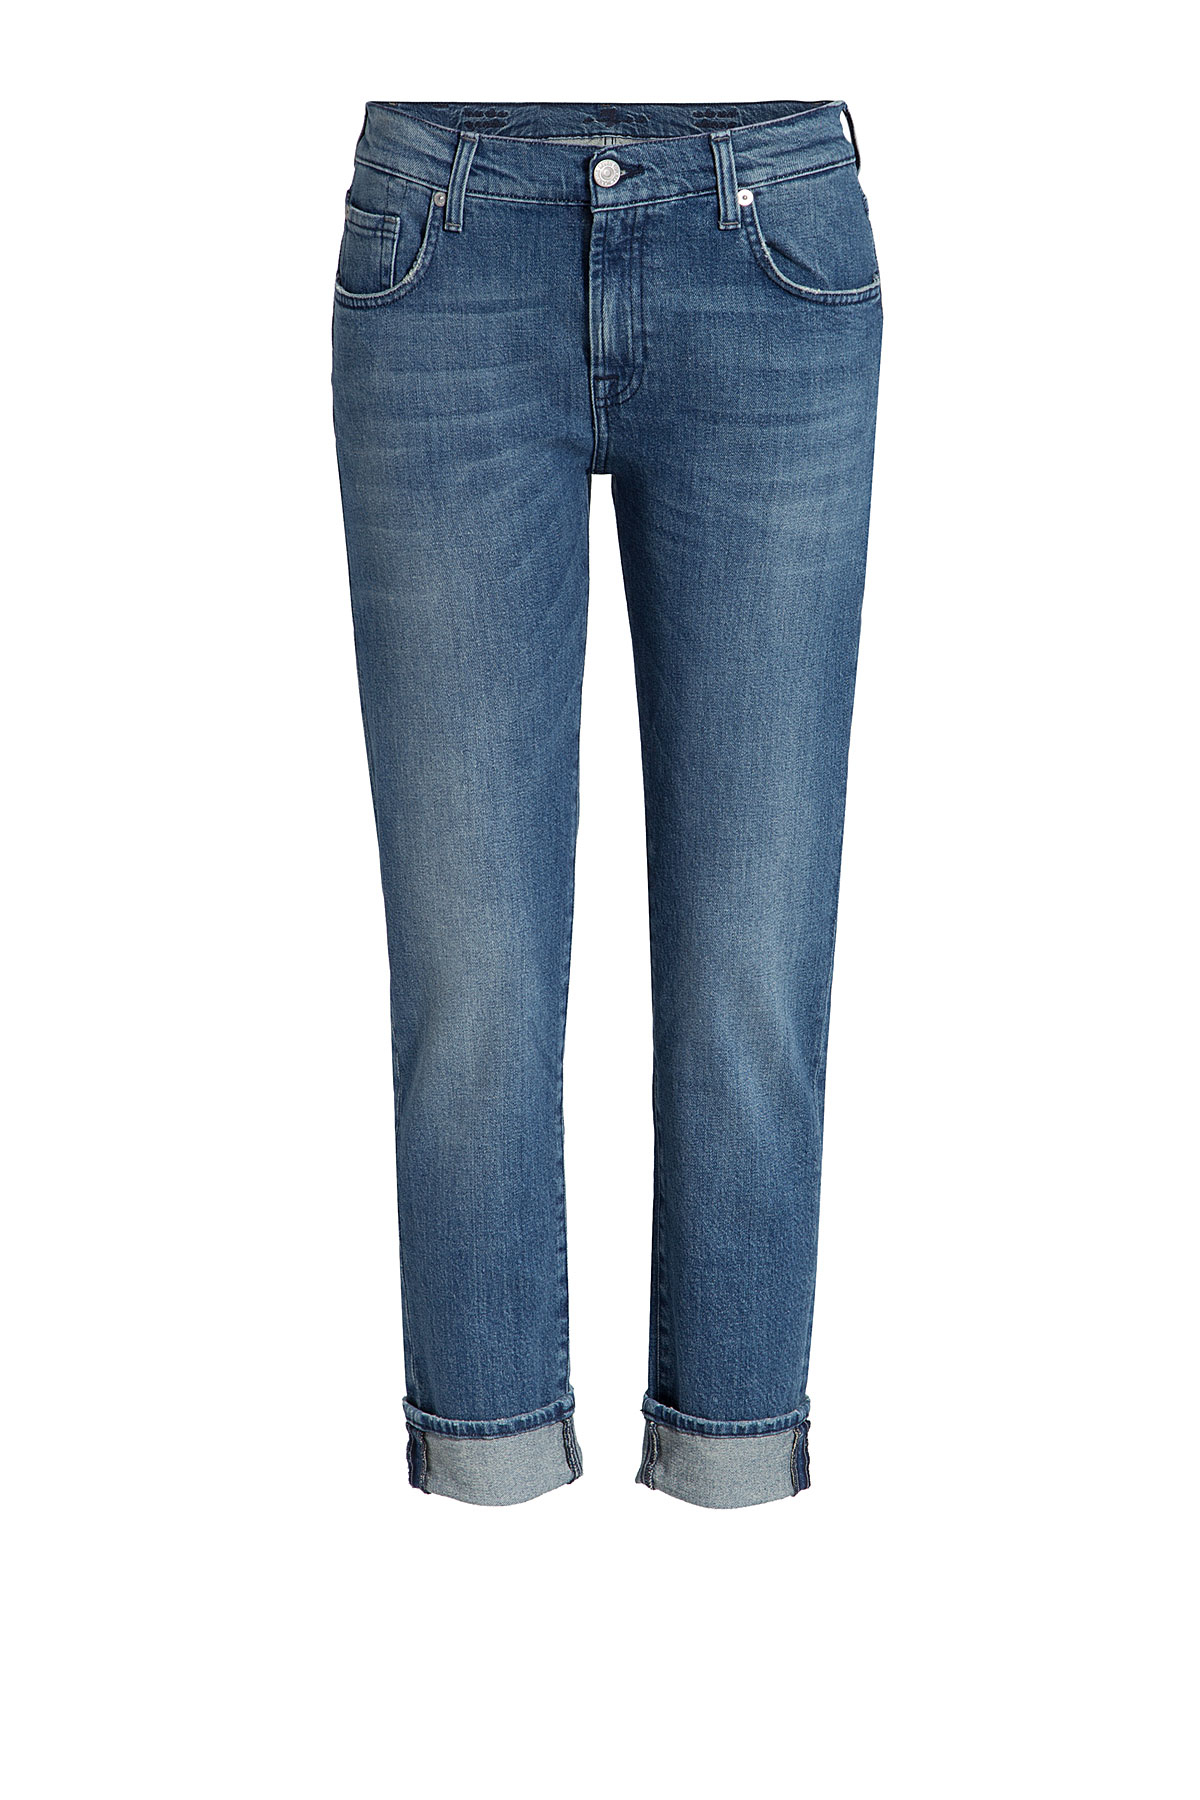 seven for all mankind cropped jeans blue product 1 146976339 normal. Black Bedroom Furniture Sets. Home Design Ideas